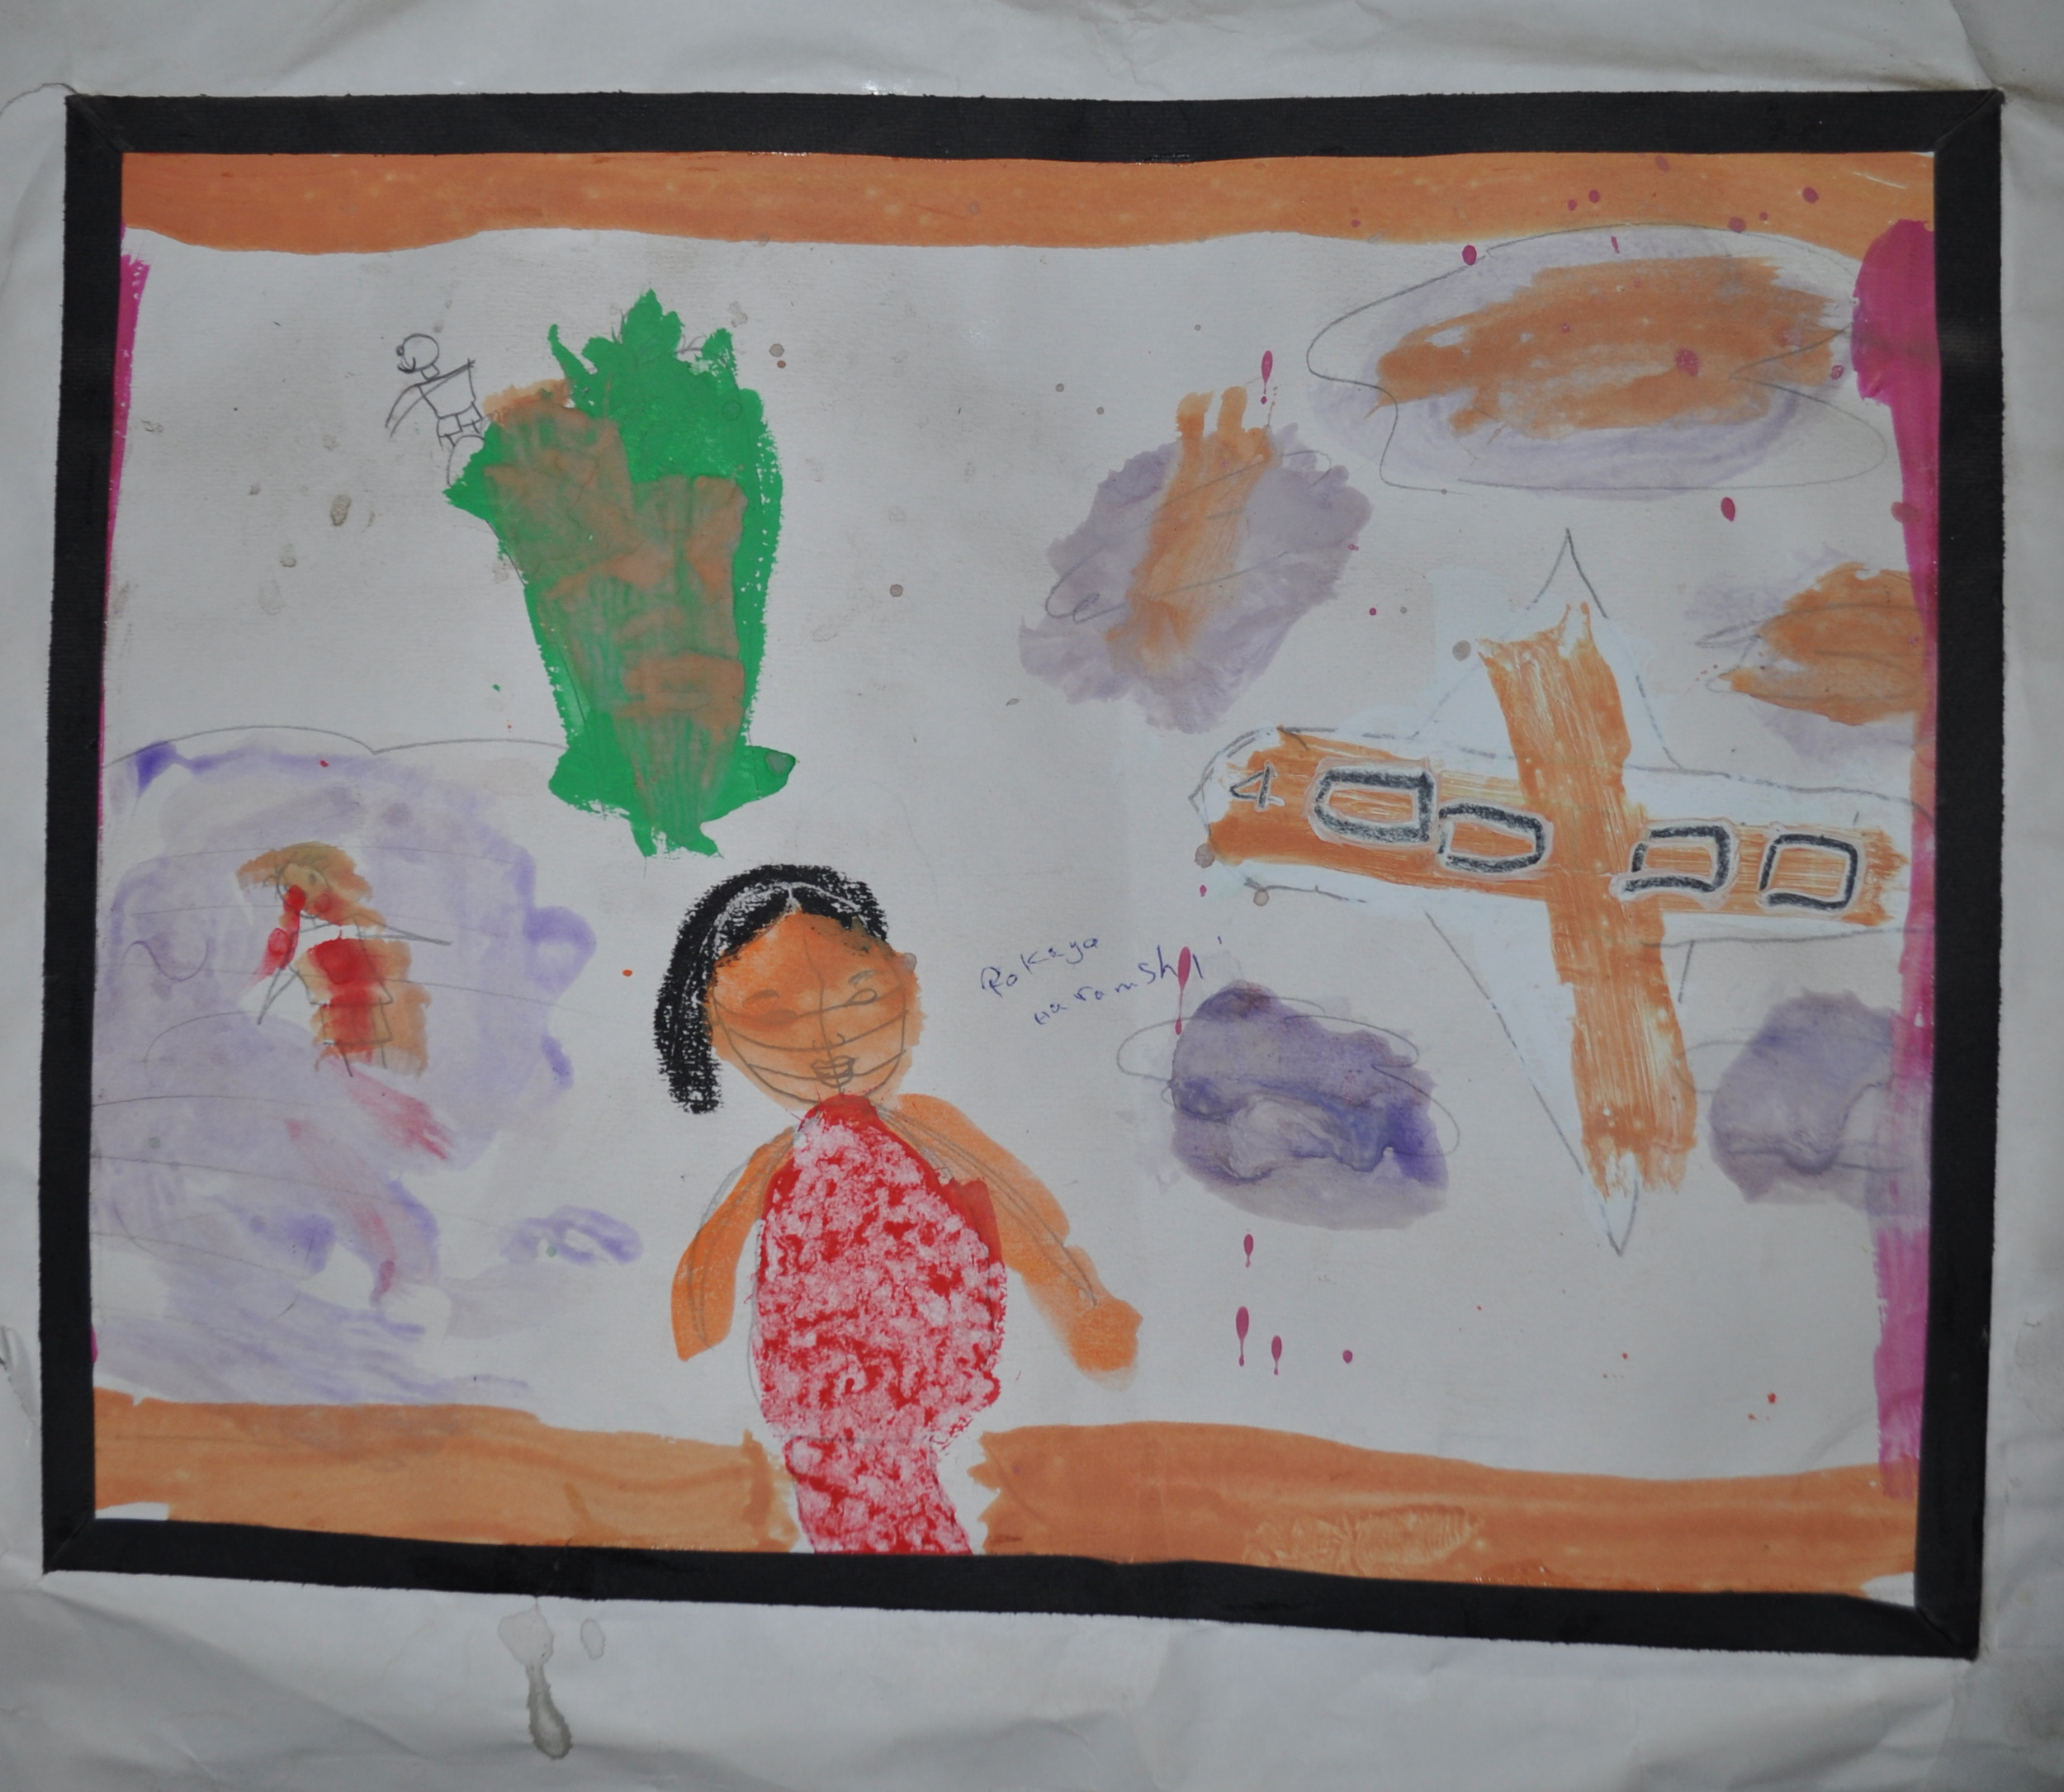 Clouds raining blood, child's drawing at Shatila camp, Beirut